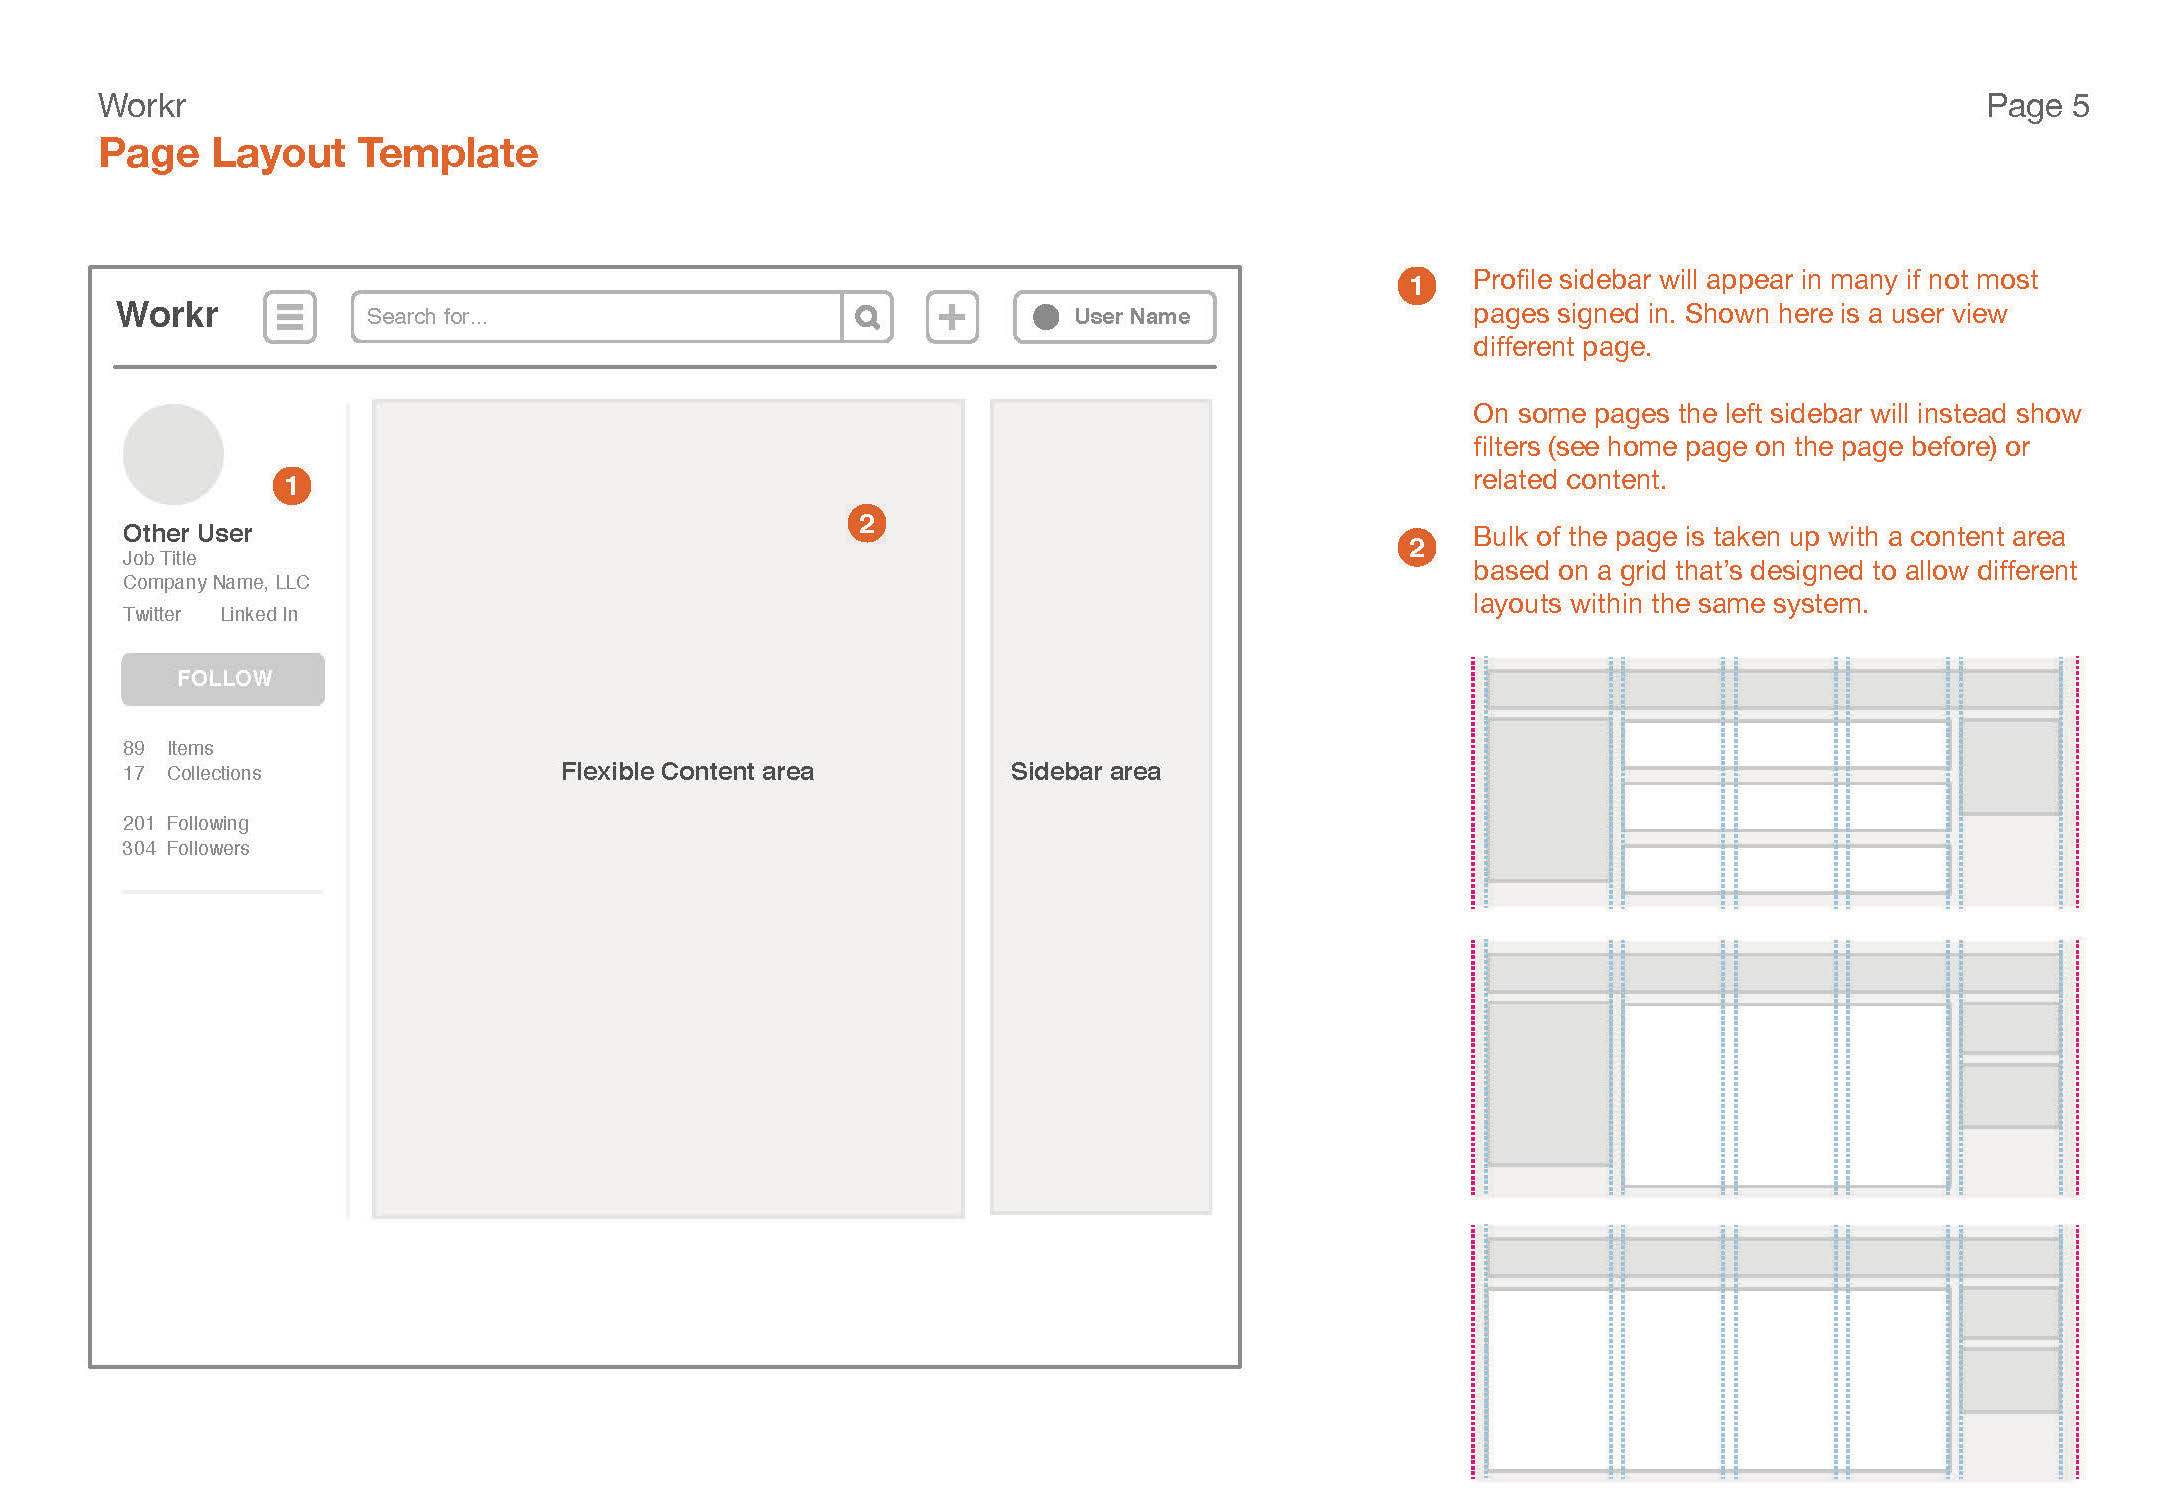 workr-wireframes-10.1_Page_05